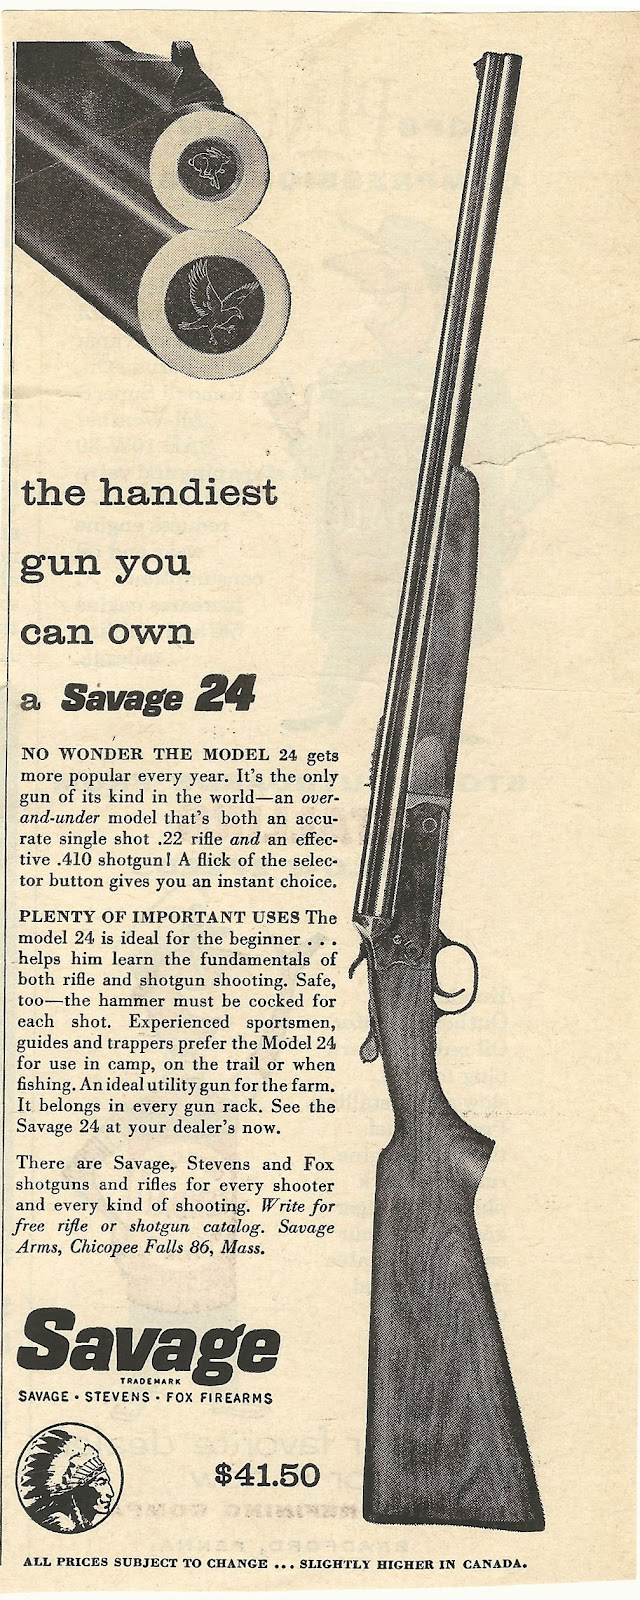 Old Ads Are Funny: 1950s ad: Savage 24